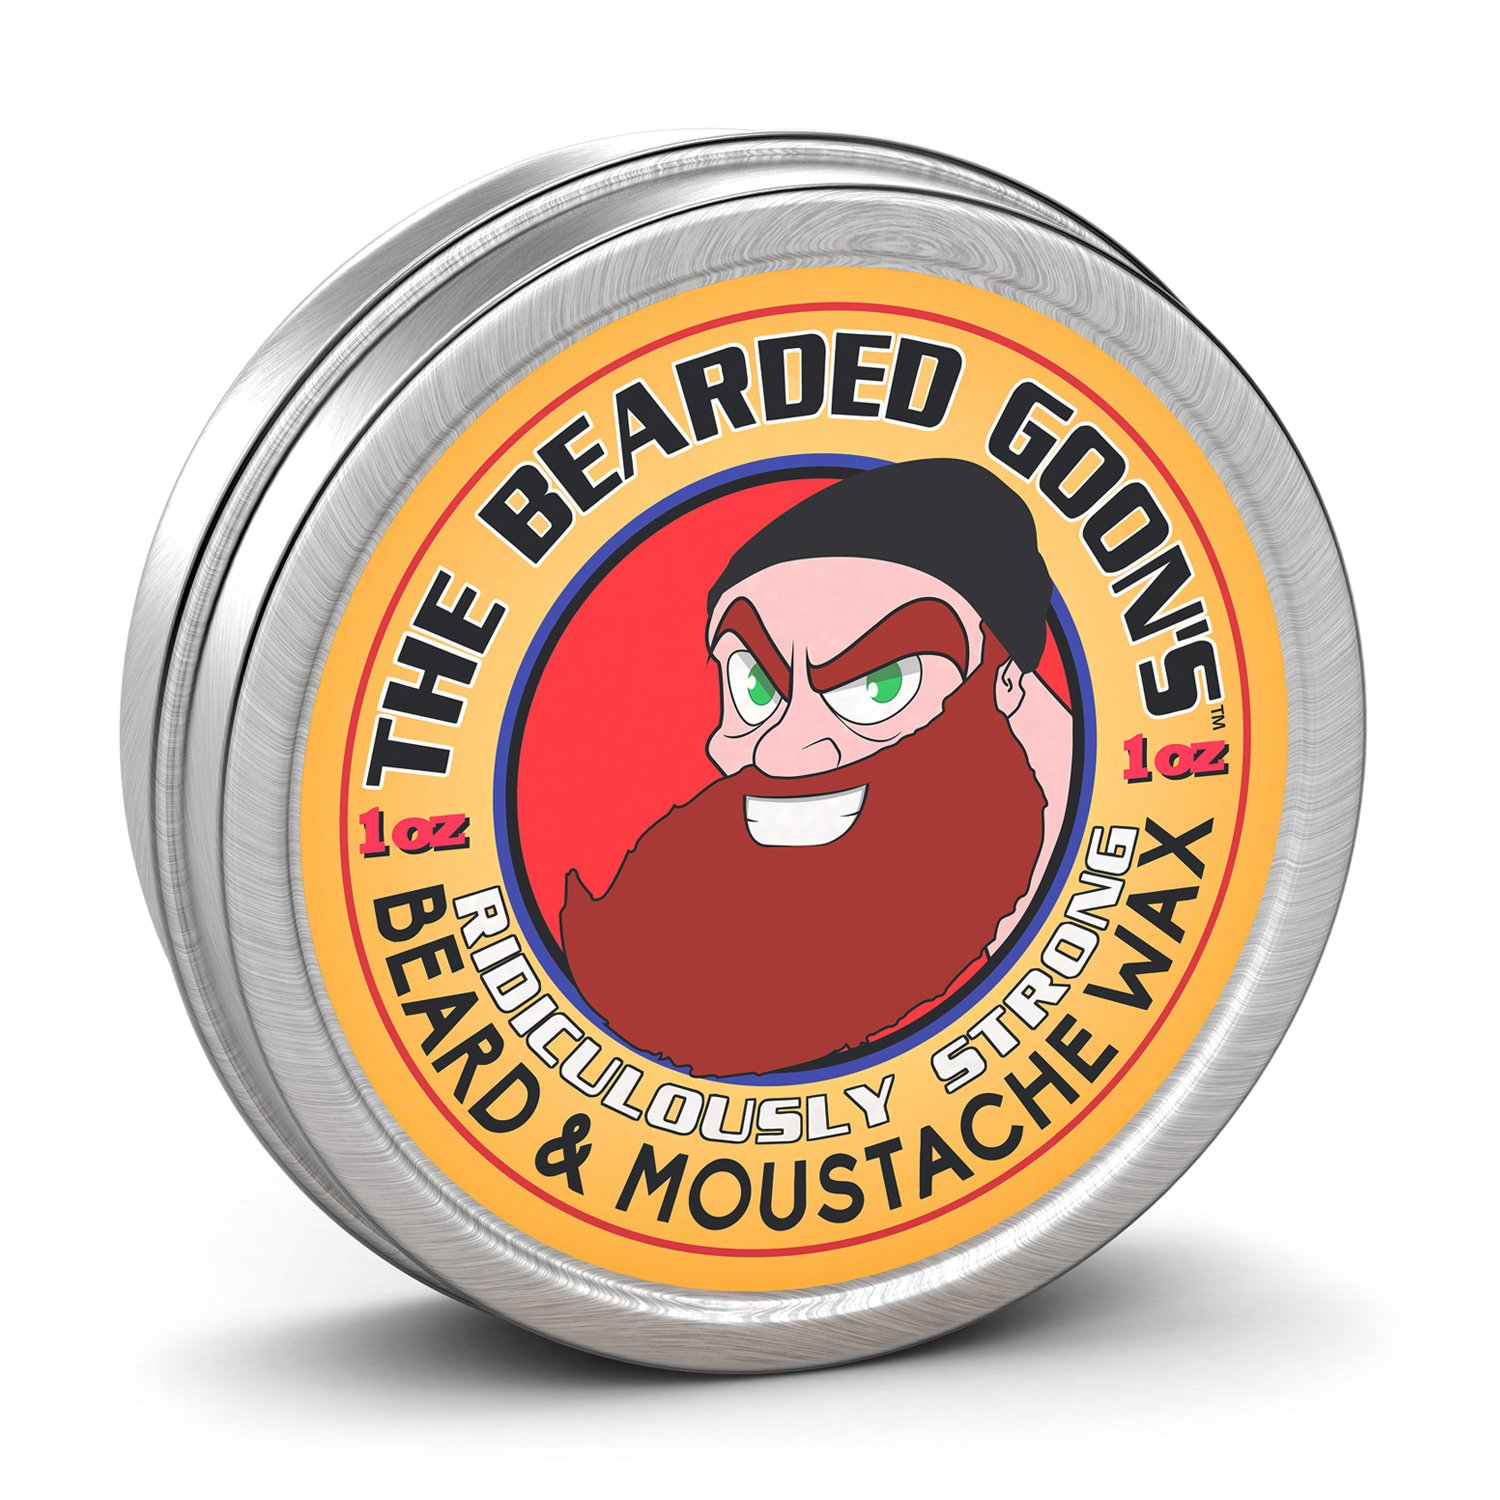 The Bearded Goon's RIDICULOUSLY STRONG Beard & Handlebar Moustache Wax - 1oz (30ml) Strongest Hold for Mustache, Beards, and Facial Hair 01